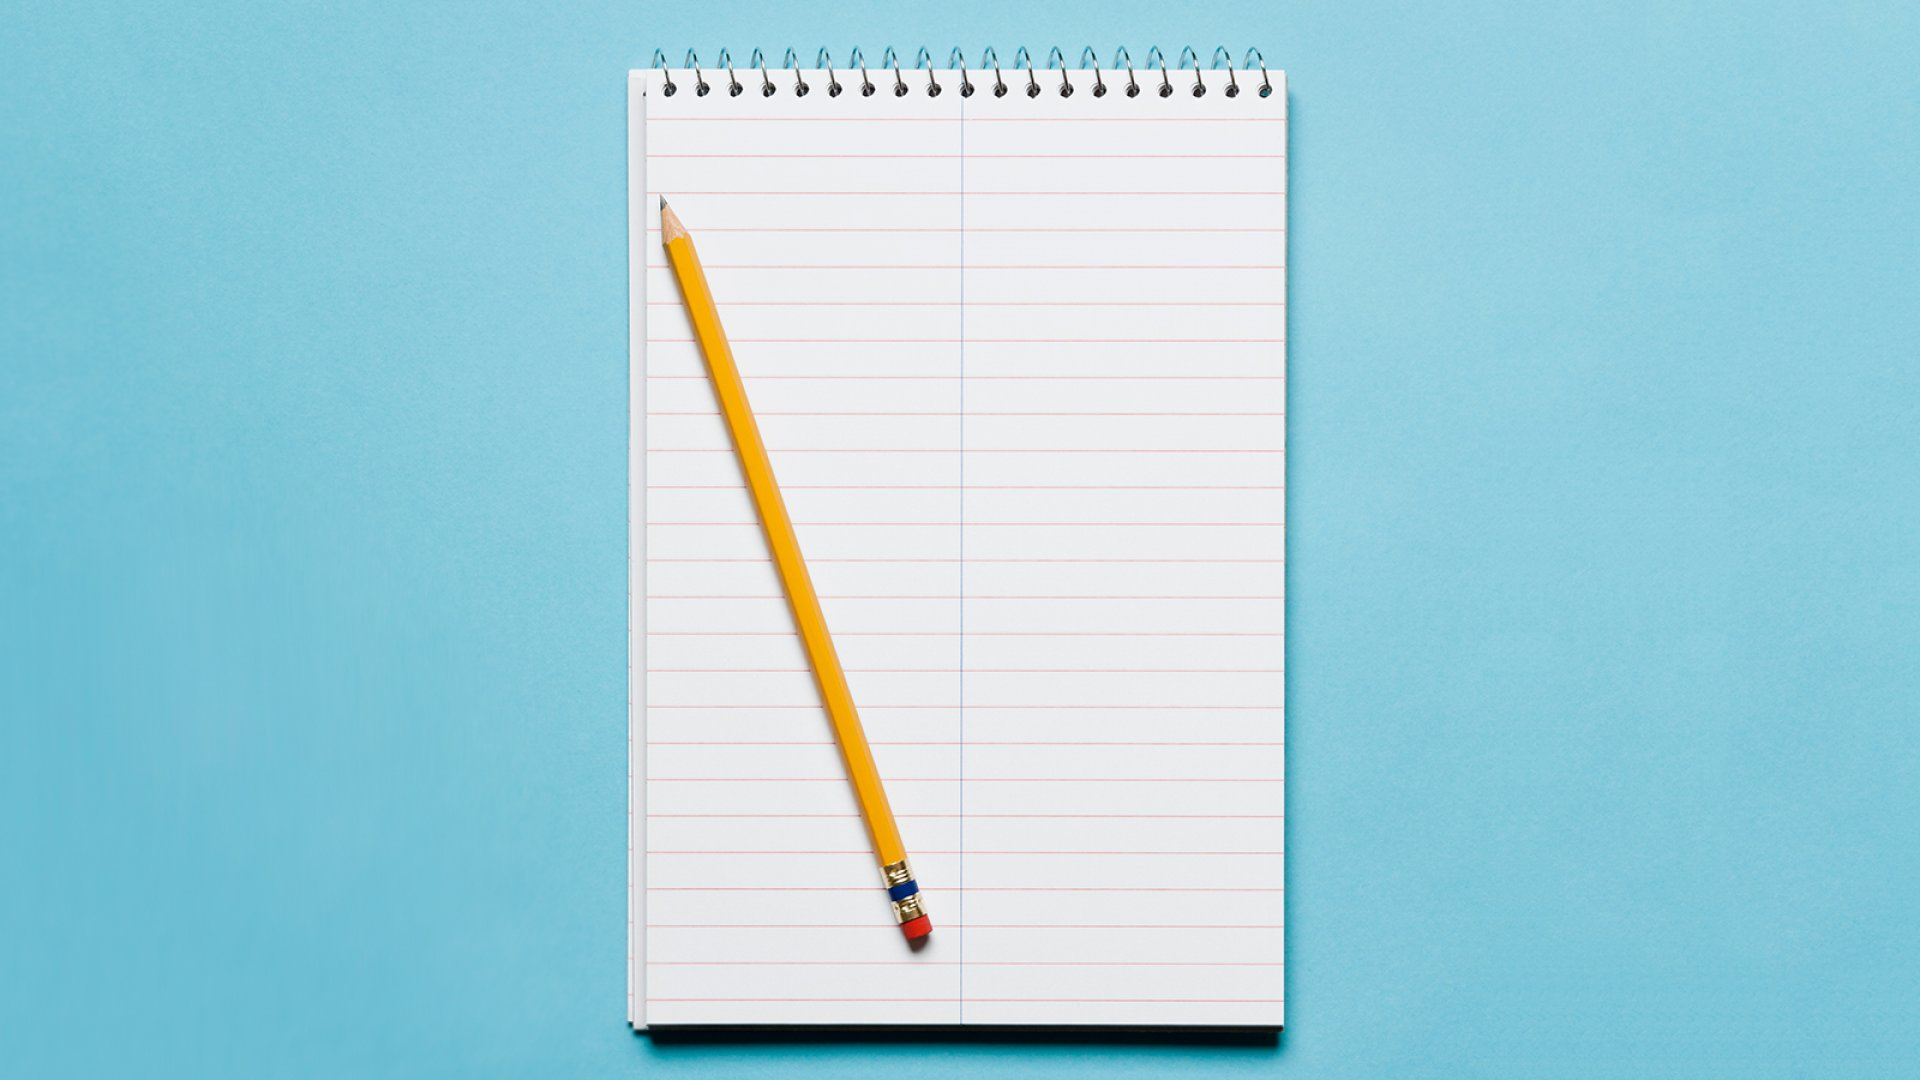 """""""I've seen some of the smartest, most successful people take copious notes during meetings,"""" says Andersen. A study in the journal <em>Psychological Science </em>found that handwritten notes led to the best long-term recall and deep understanding, even if people didn't get many of the words jotted down."""